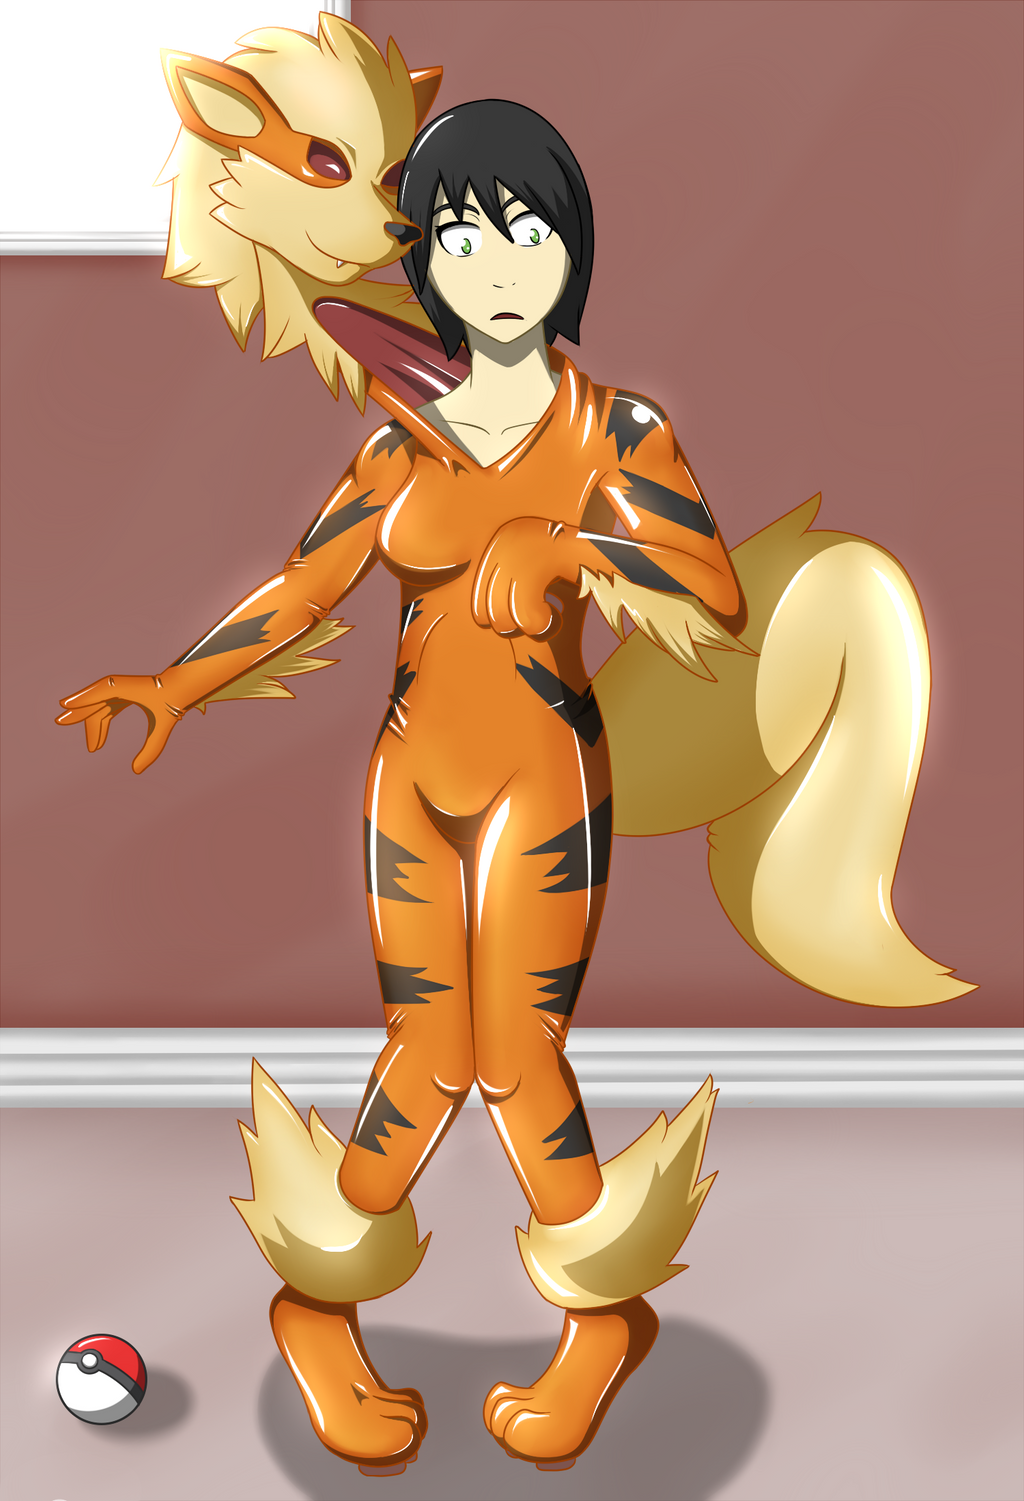 Very Latex furry sex suit transformation yiff